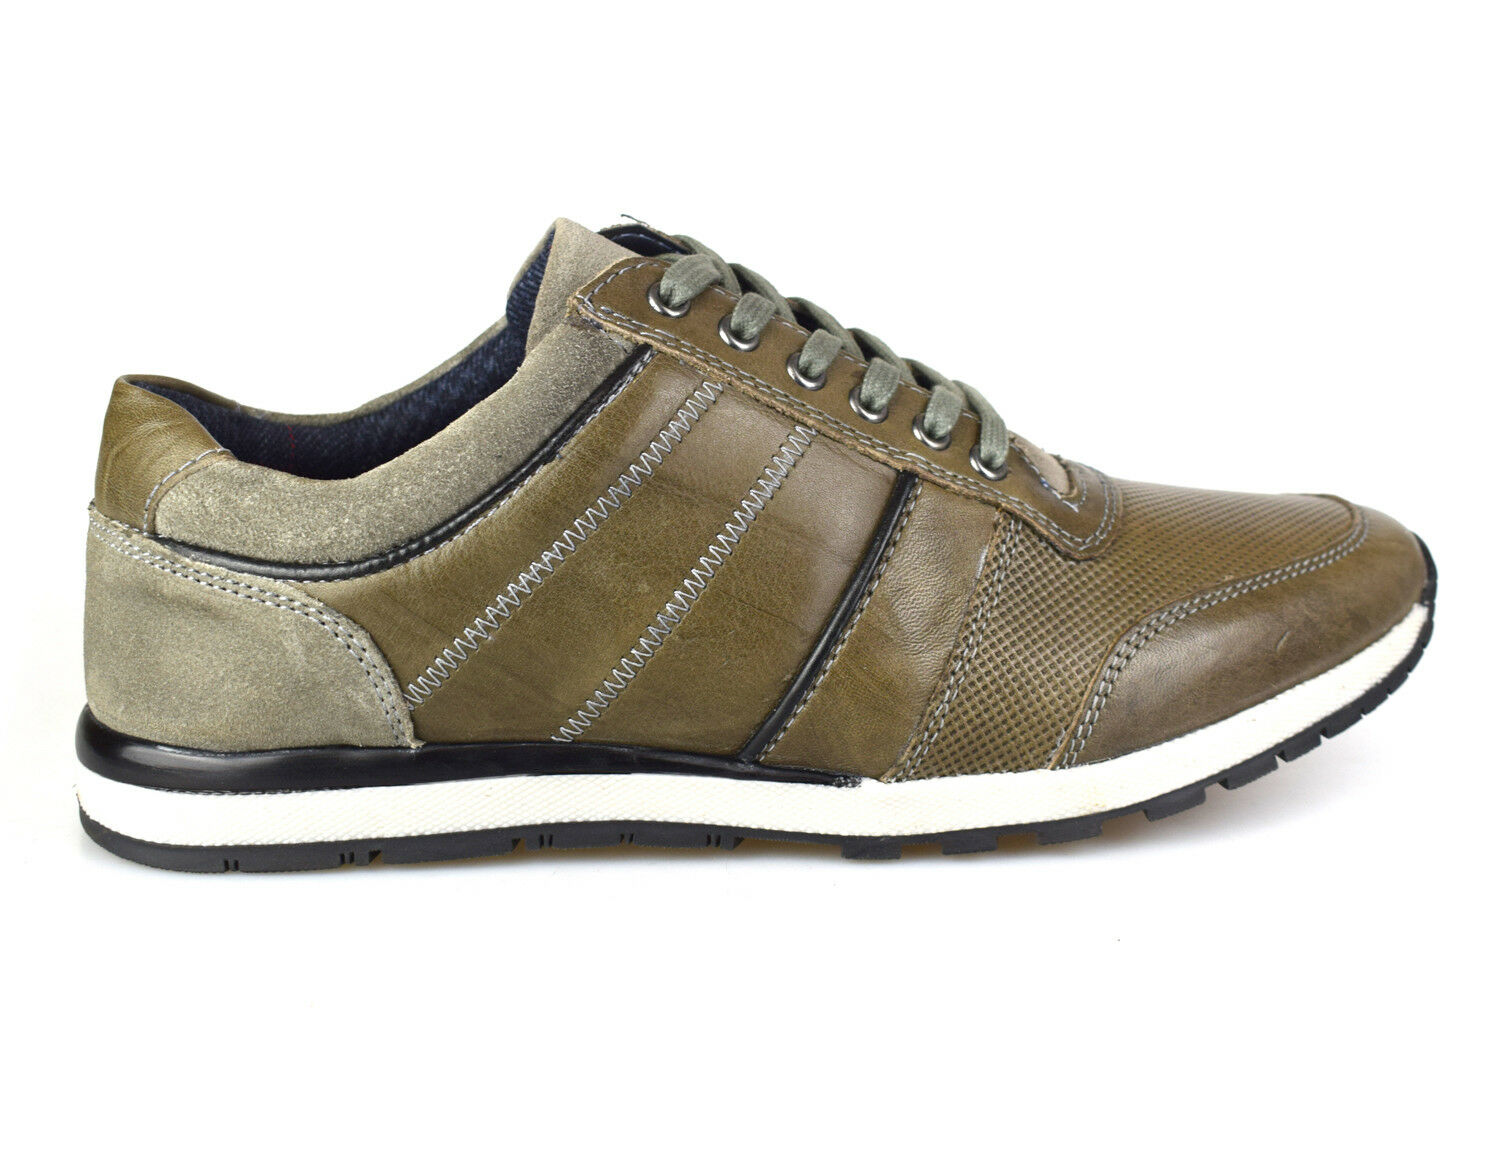 Silber Street London Melton grau Leather Casual Casual Casual schuhe Free UK P&P 00d55e